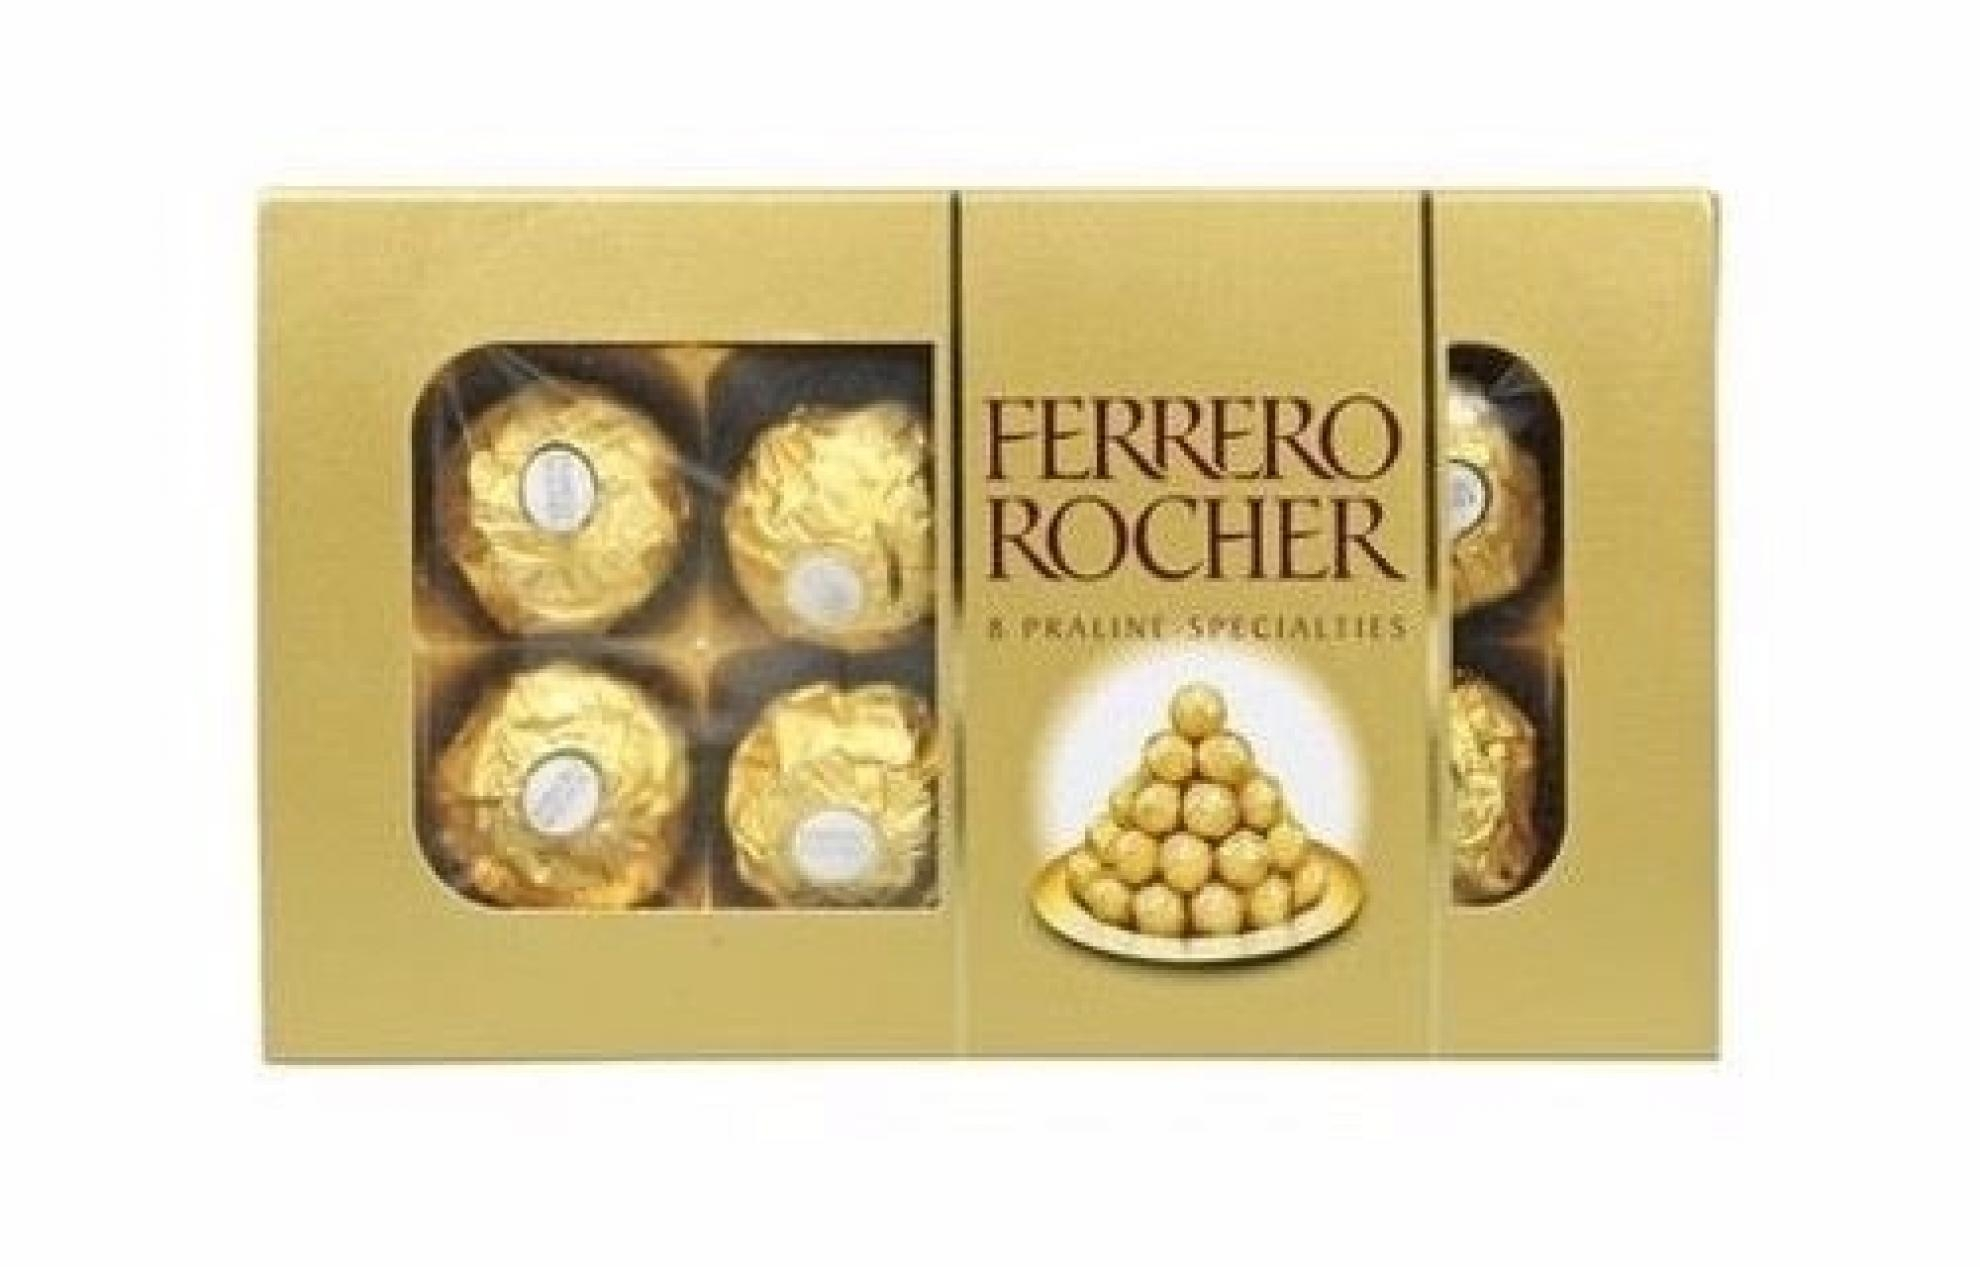 Chocolate Ferrero Rocher 8 unidades - 5003